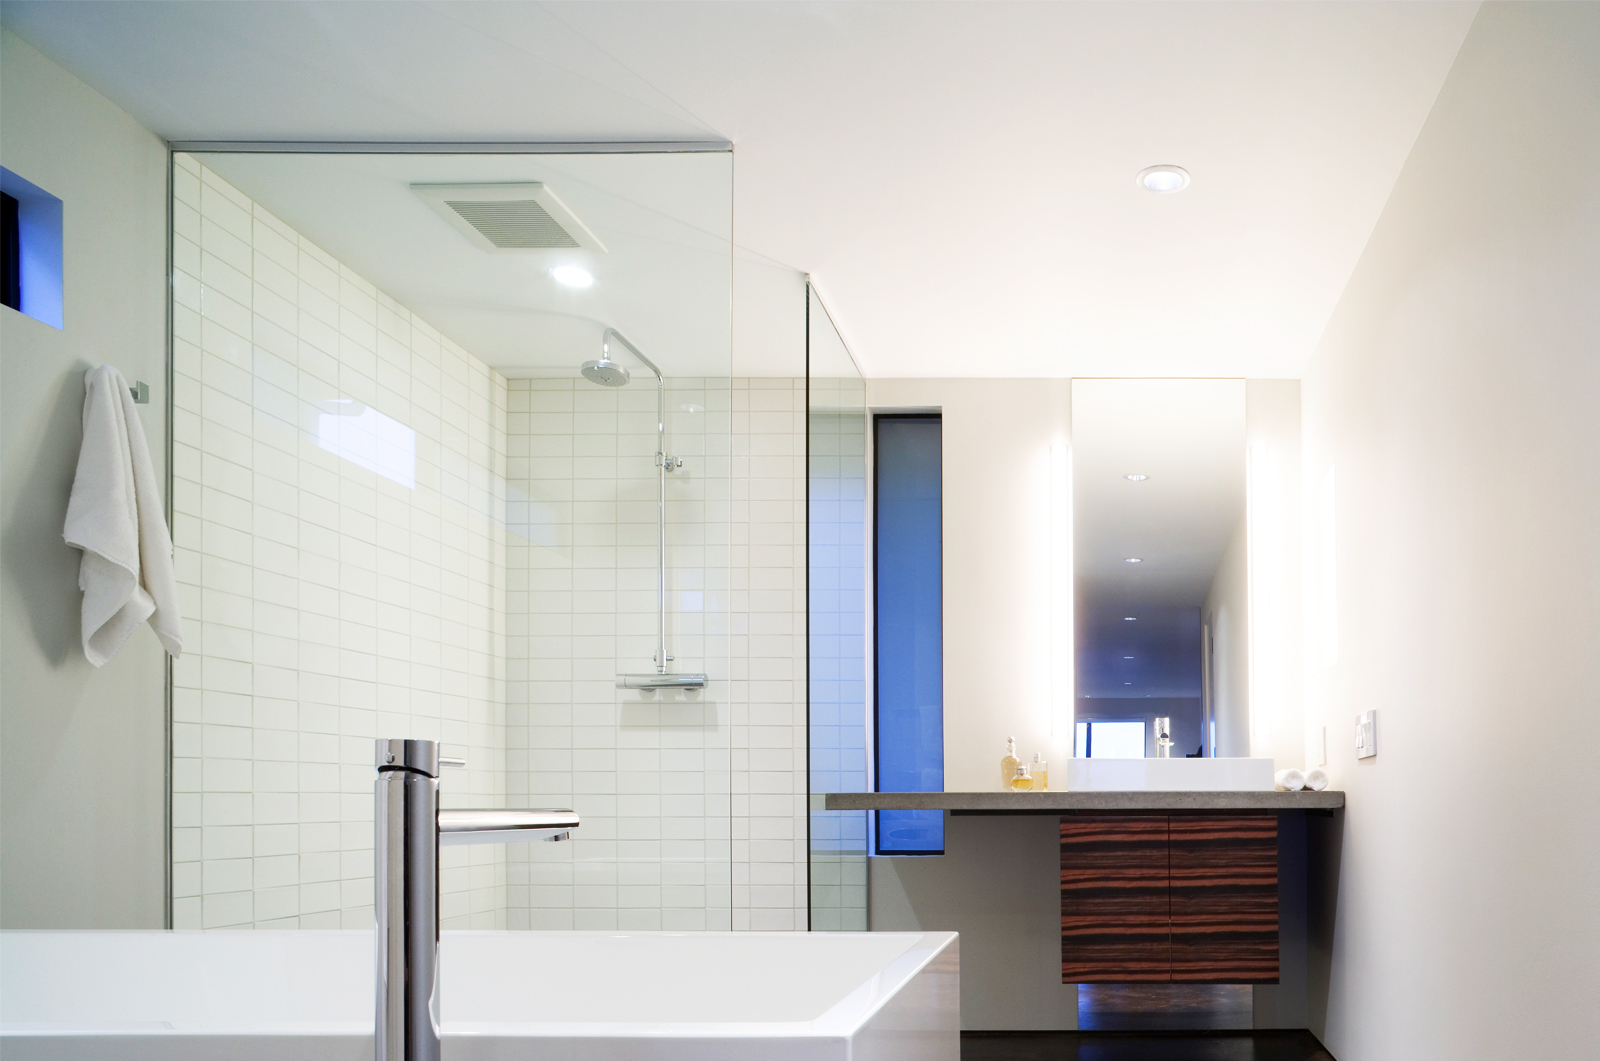 The bathroom in Riley's Cove. Photo by Tim Bies, Olson Kundig Architects.